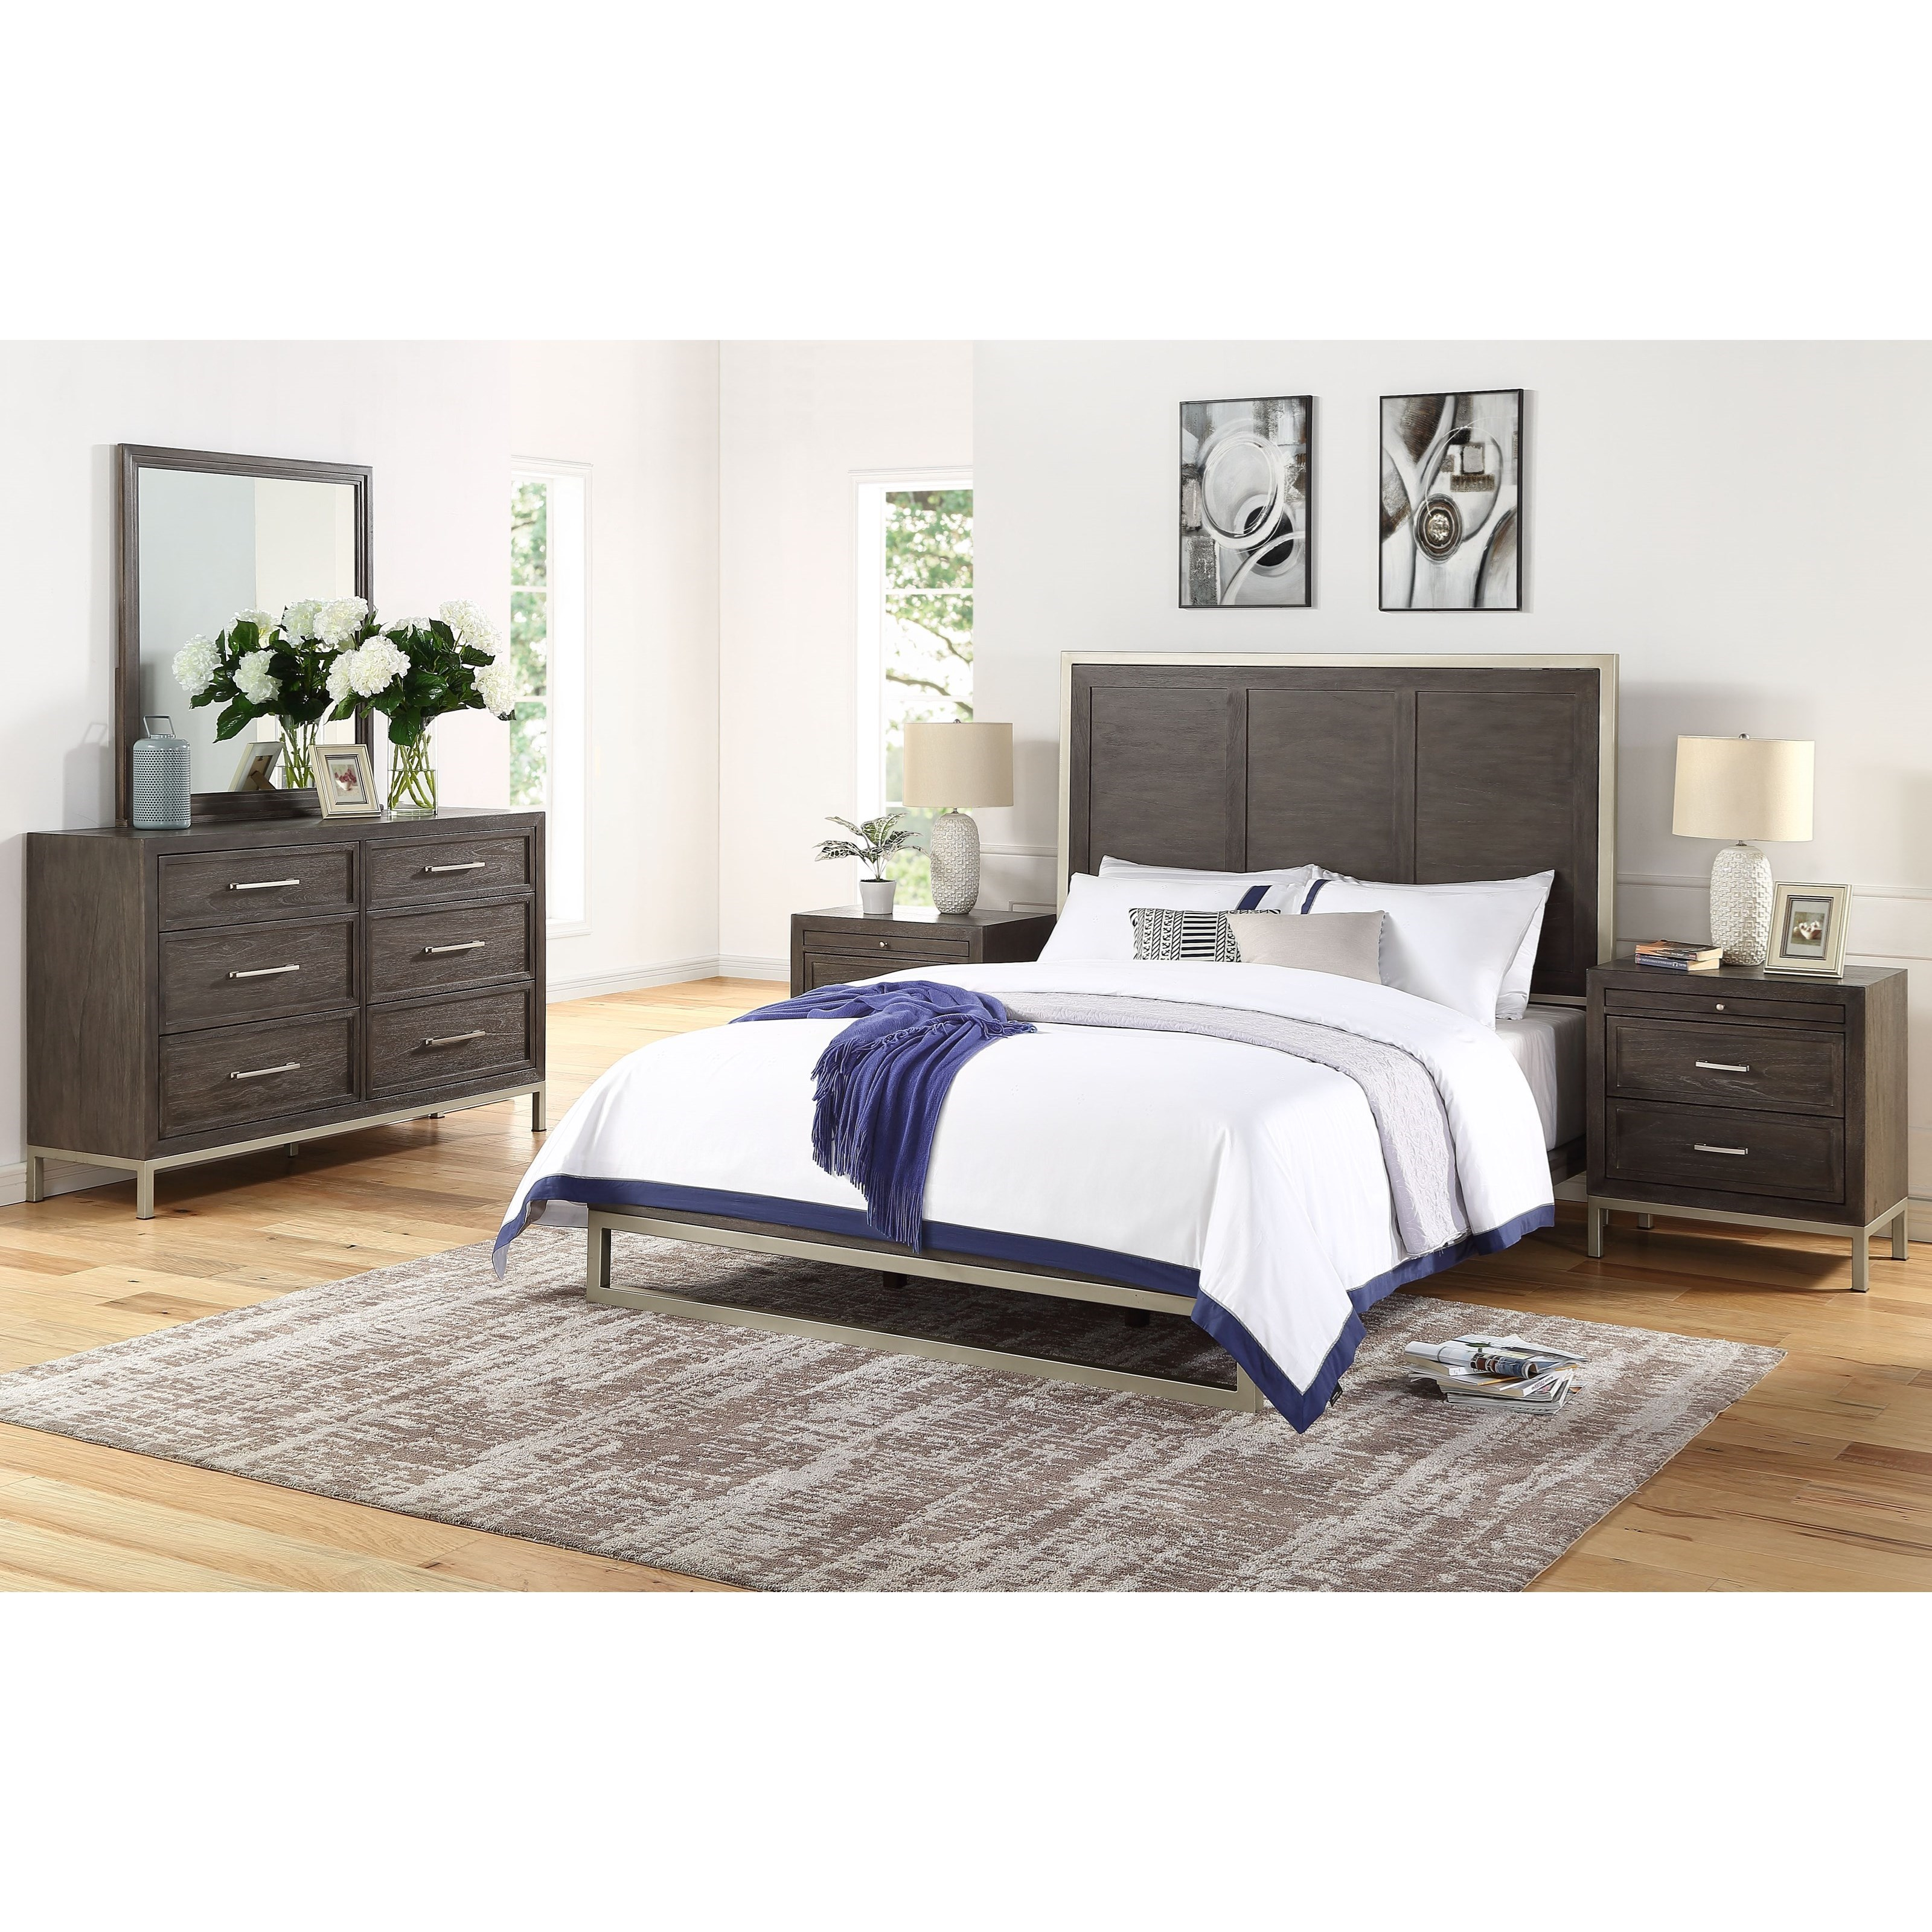 Broomfield King Bedroom Group by Steve Silver at Northeast Factory Direct